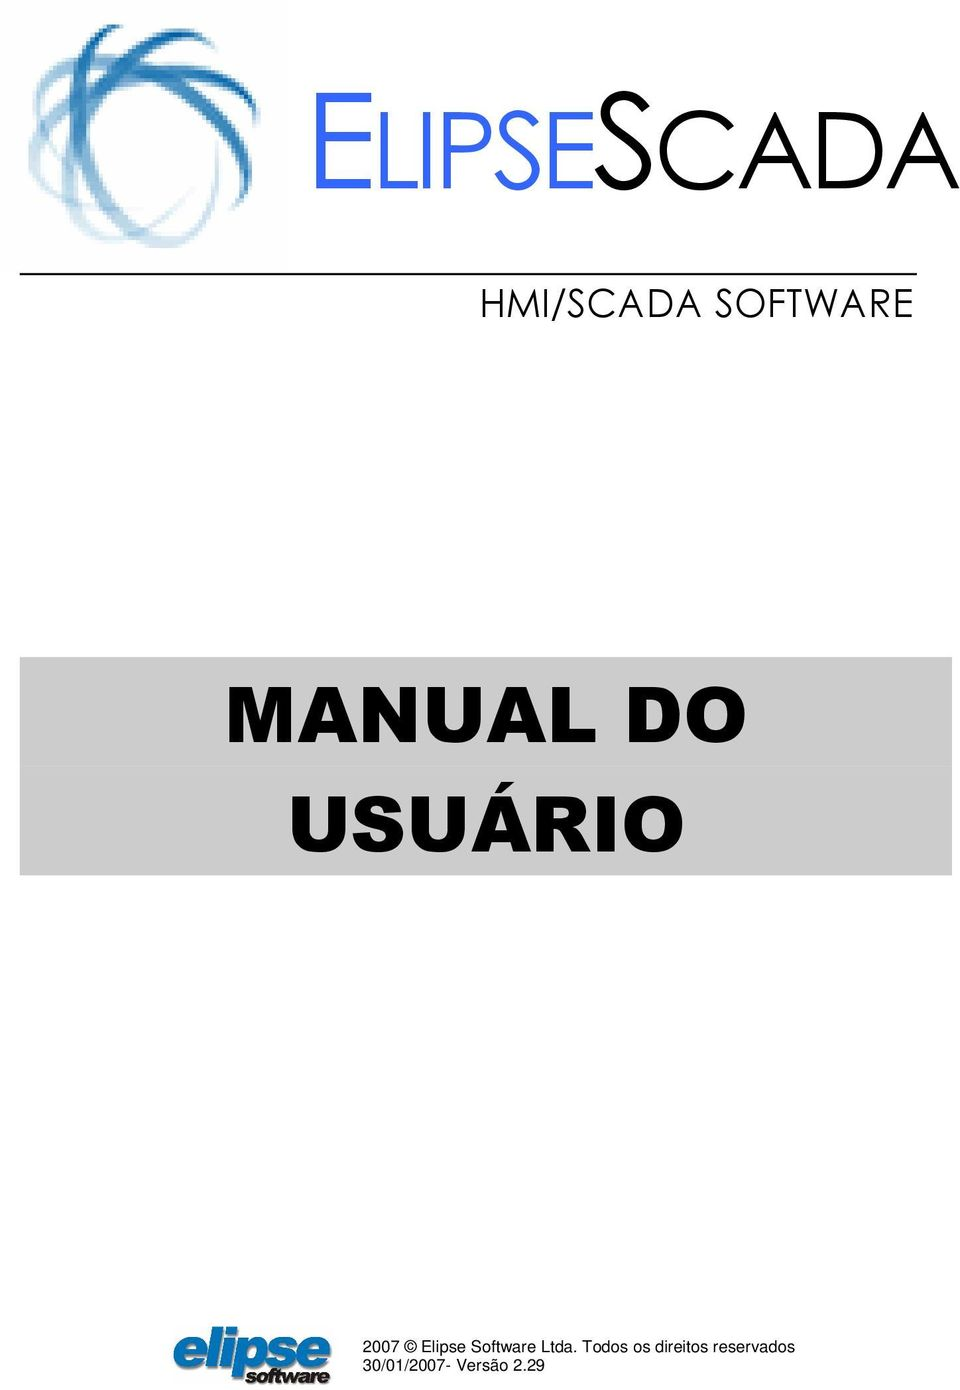 Software Ltda.